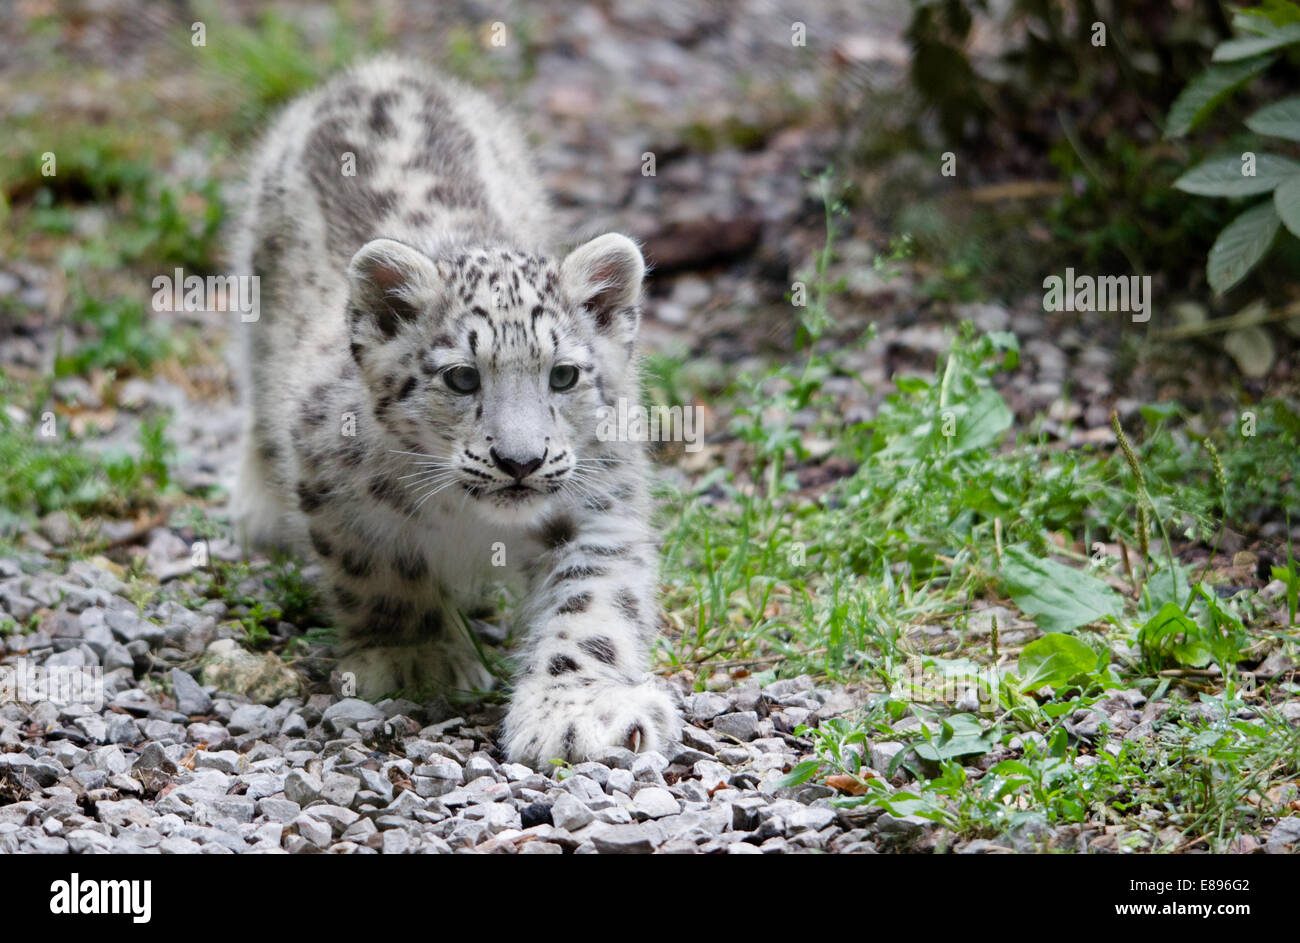 A lone Snow leopard cub tentatively explorers the area. - Stock Image